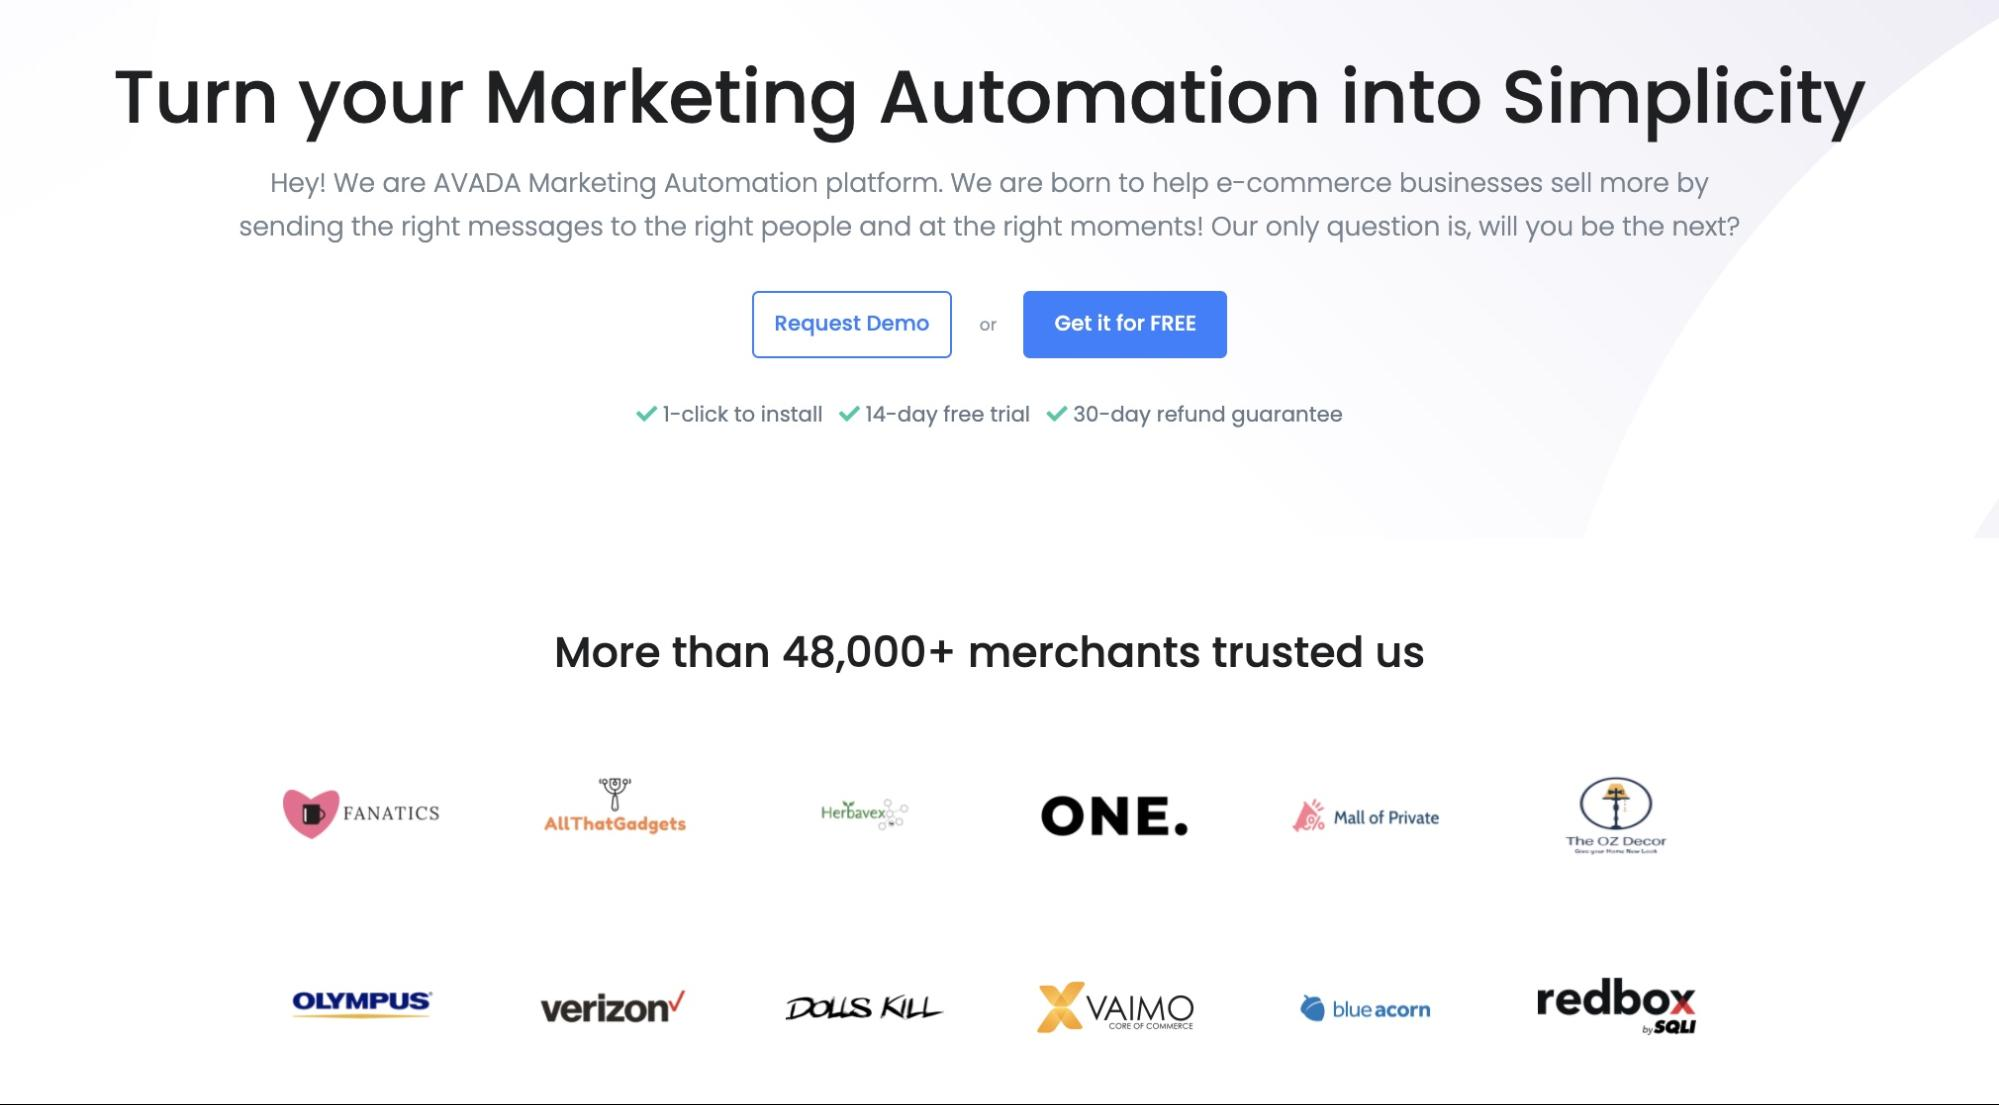 Use AVADA Marketing Automation to get started with B2B Email marketing